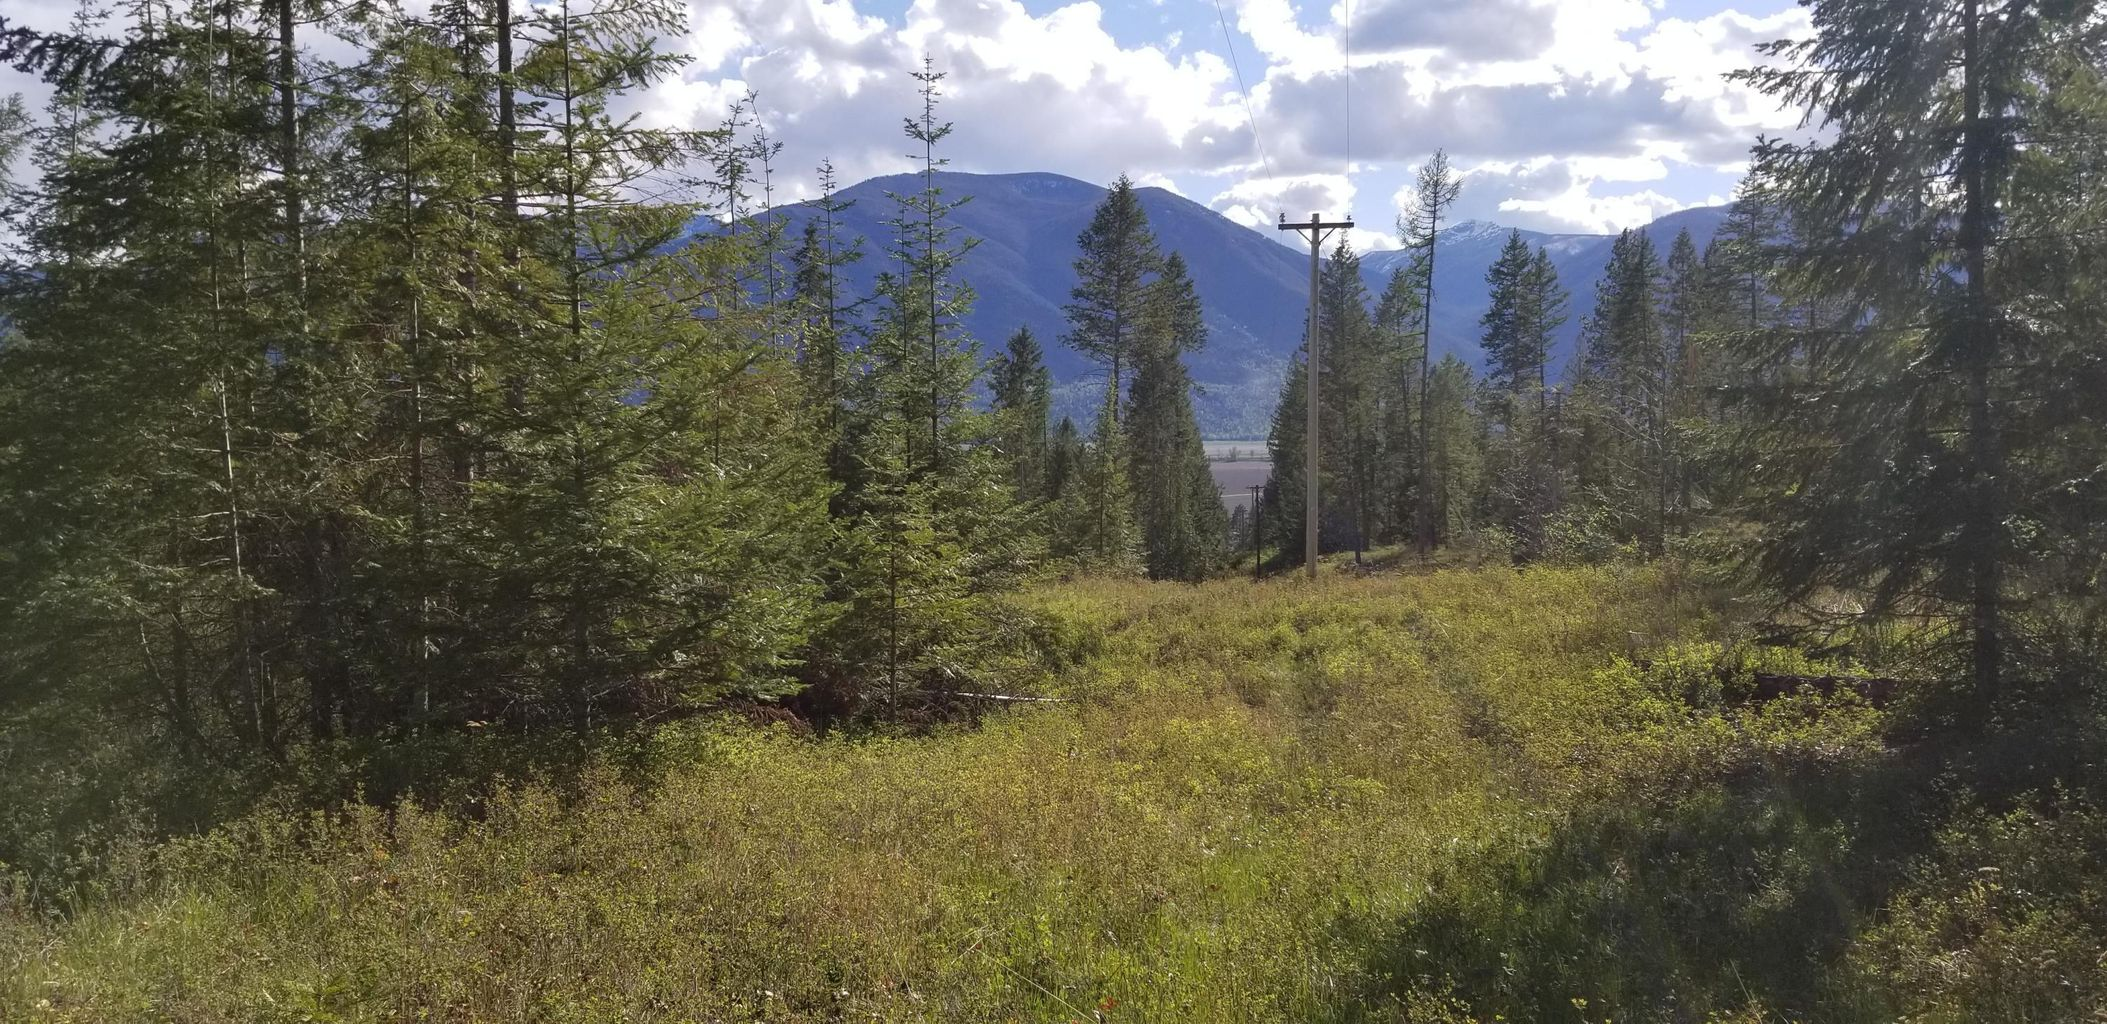 NNA New Chisholm Lane: Panoramic views of the Selkirk Mountains to the West. Amazing Southern Exposure! Power is very close on adjoining parcel.